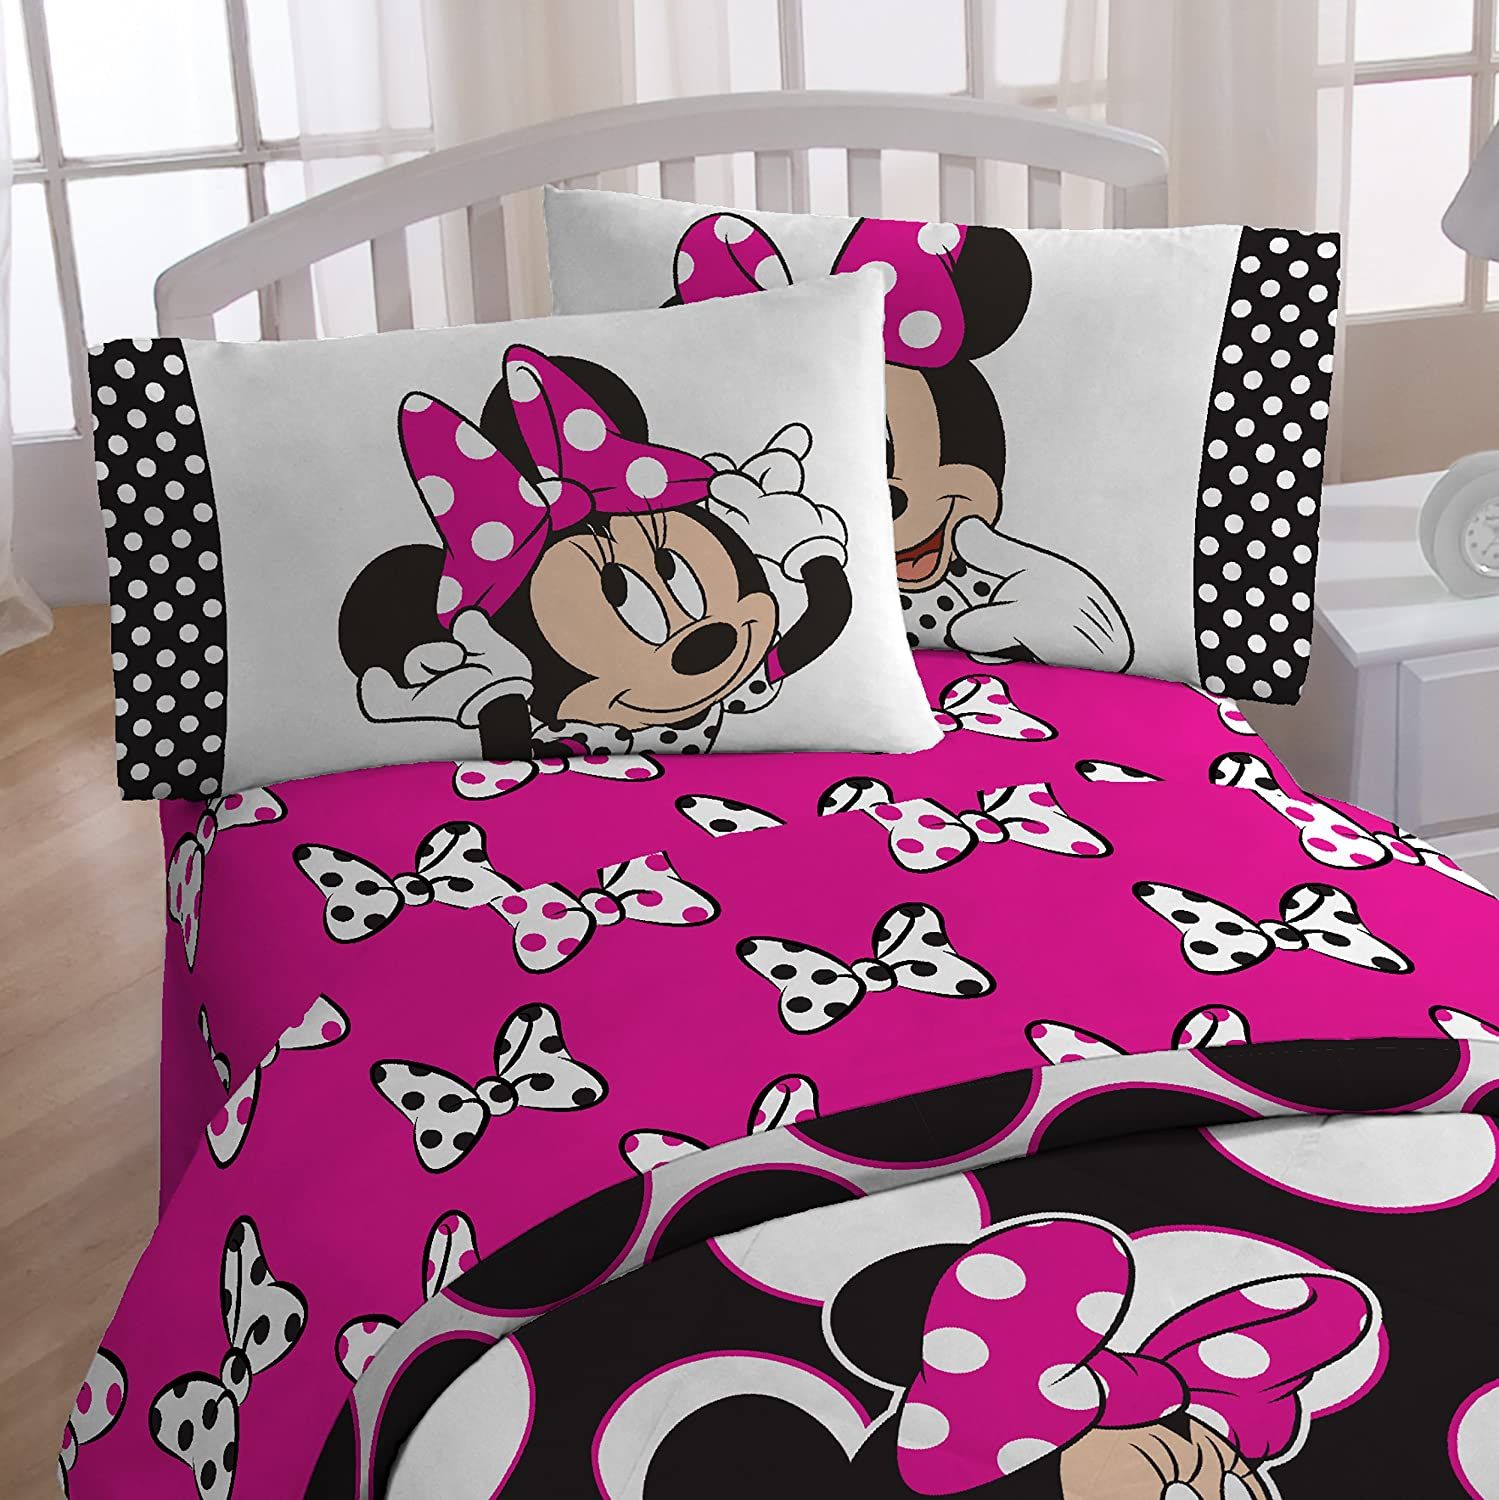 Disney Minnie 'Dots are the New Black' 4 Piece Twin Bed In A Bag